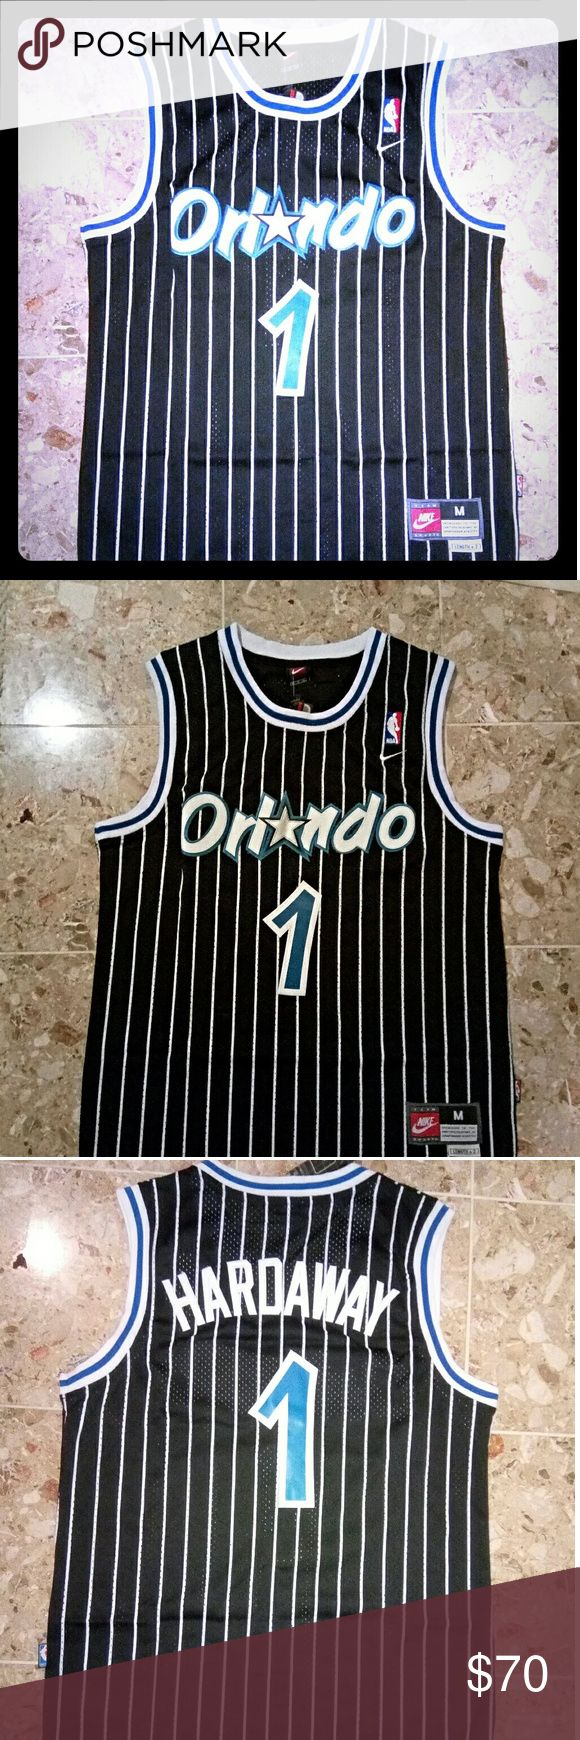 Vintage NBA Orlando Magic Penny Hardaway Jersey I am selling a brand new vintage and rare Nike NBA Orlando Magic Anfernee Penny Hardaway Jersey. This jersey is in a size Men's Medium. Fits great. Please serious inquiries only. Nike Shirts Tank Tops